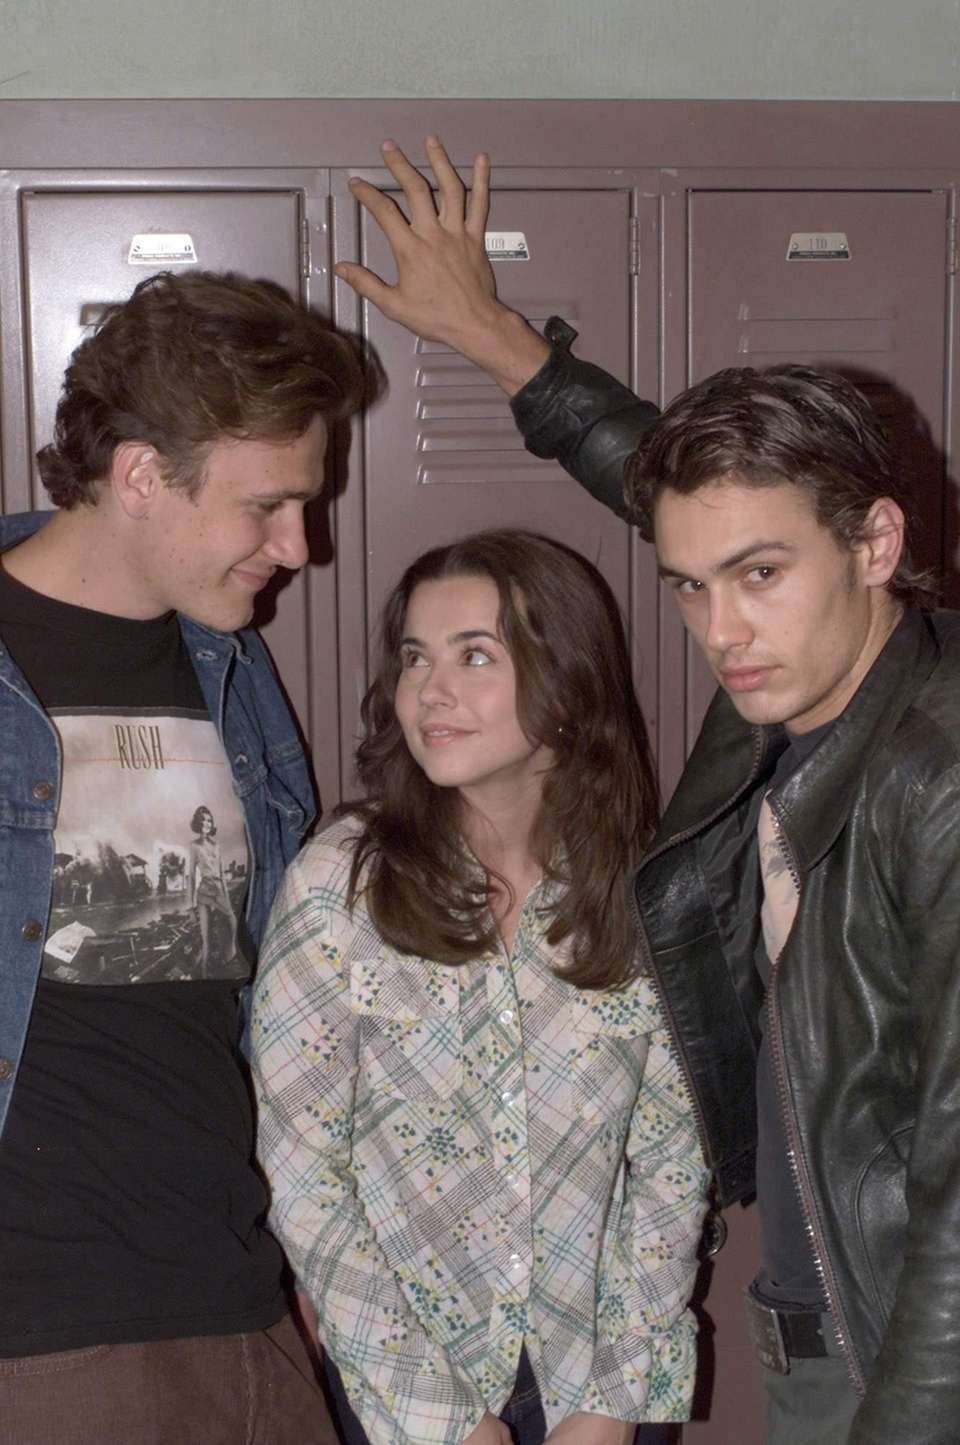 James Franco, right, first got on our radar